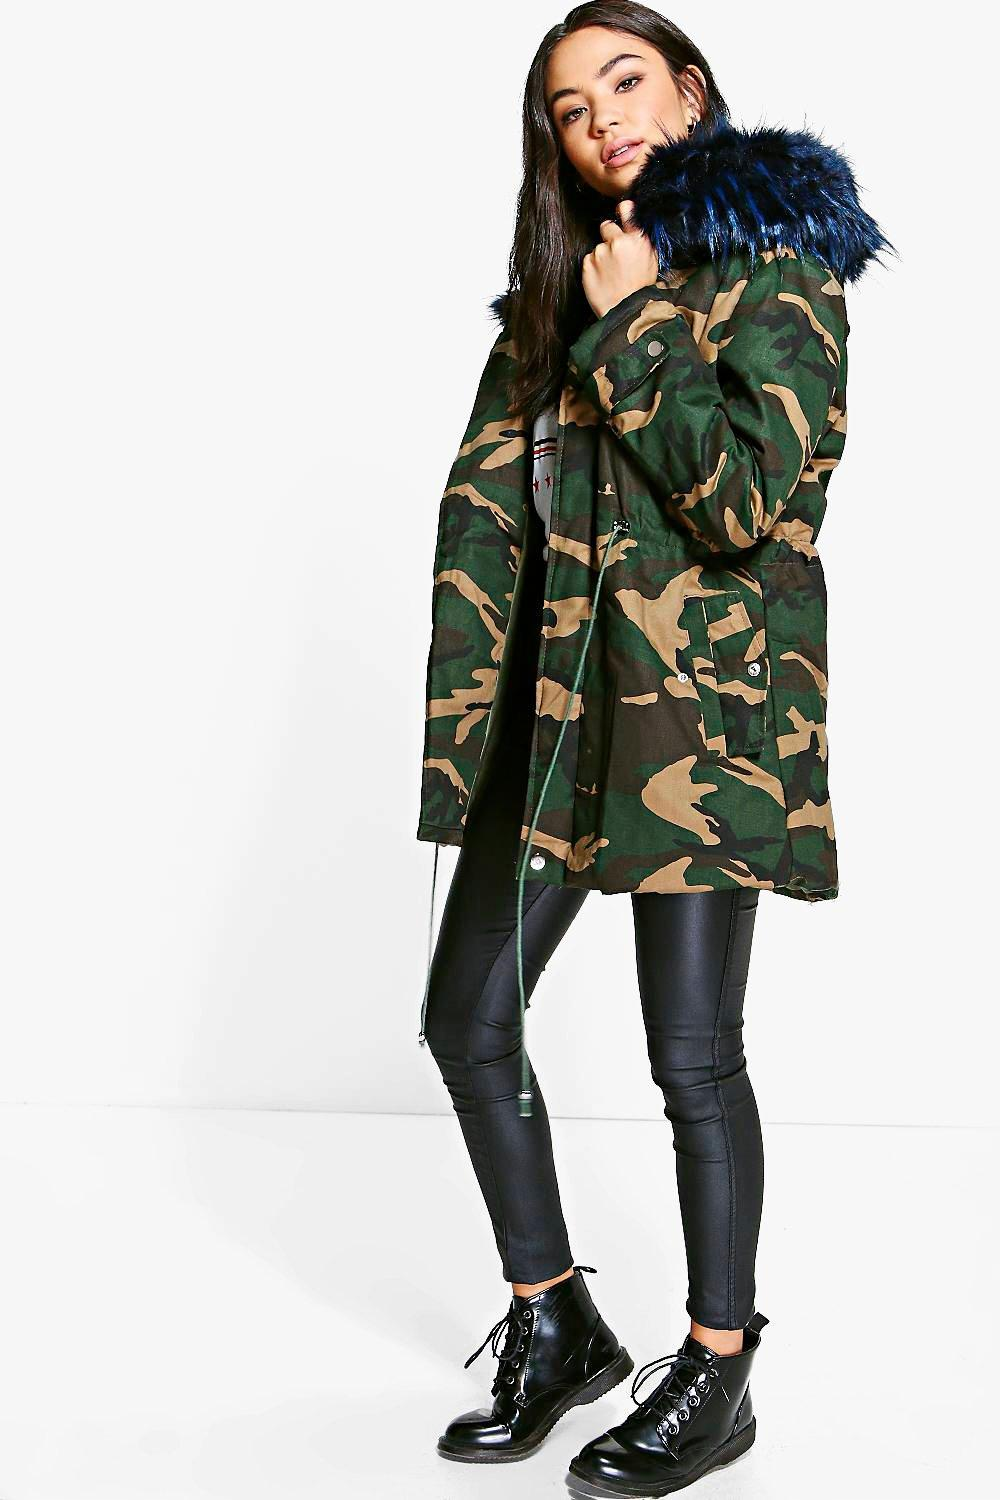 Camo Faux Fur Trim Parka - multi